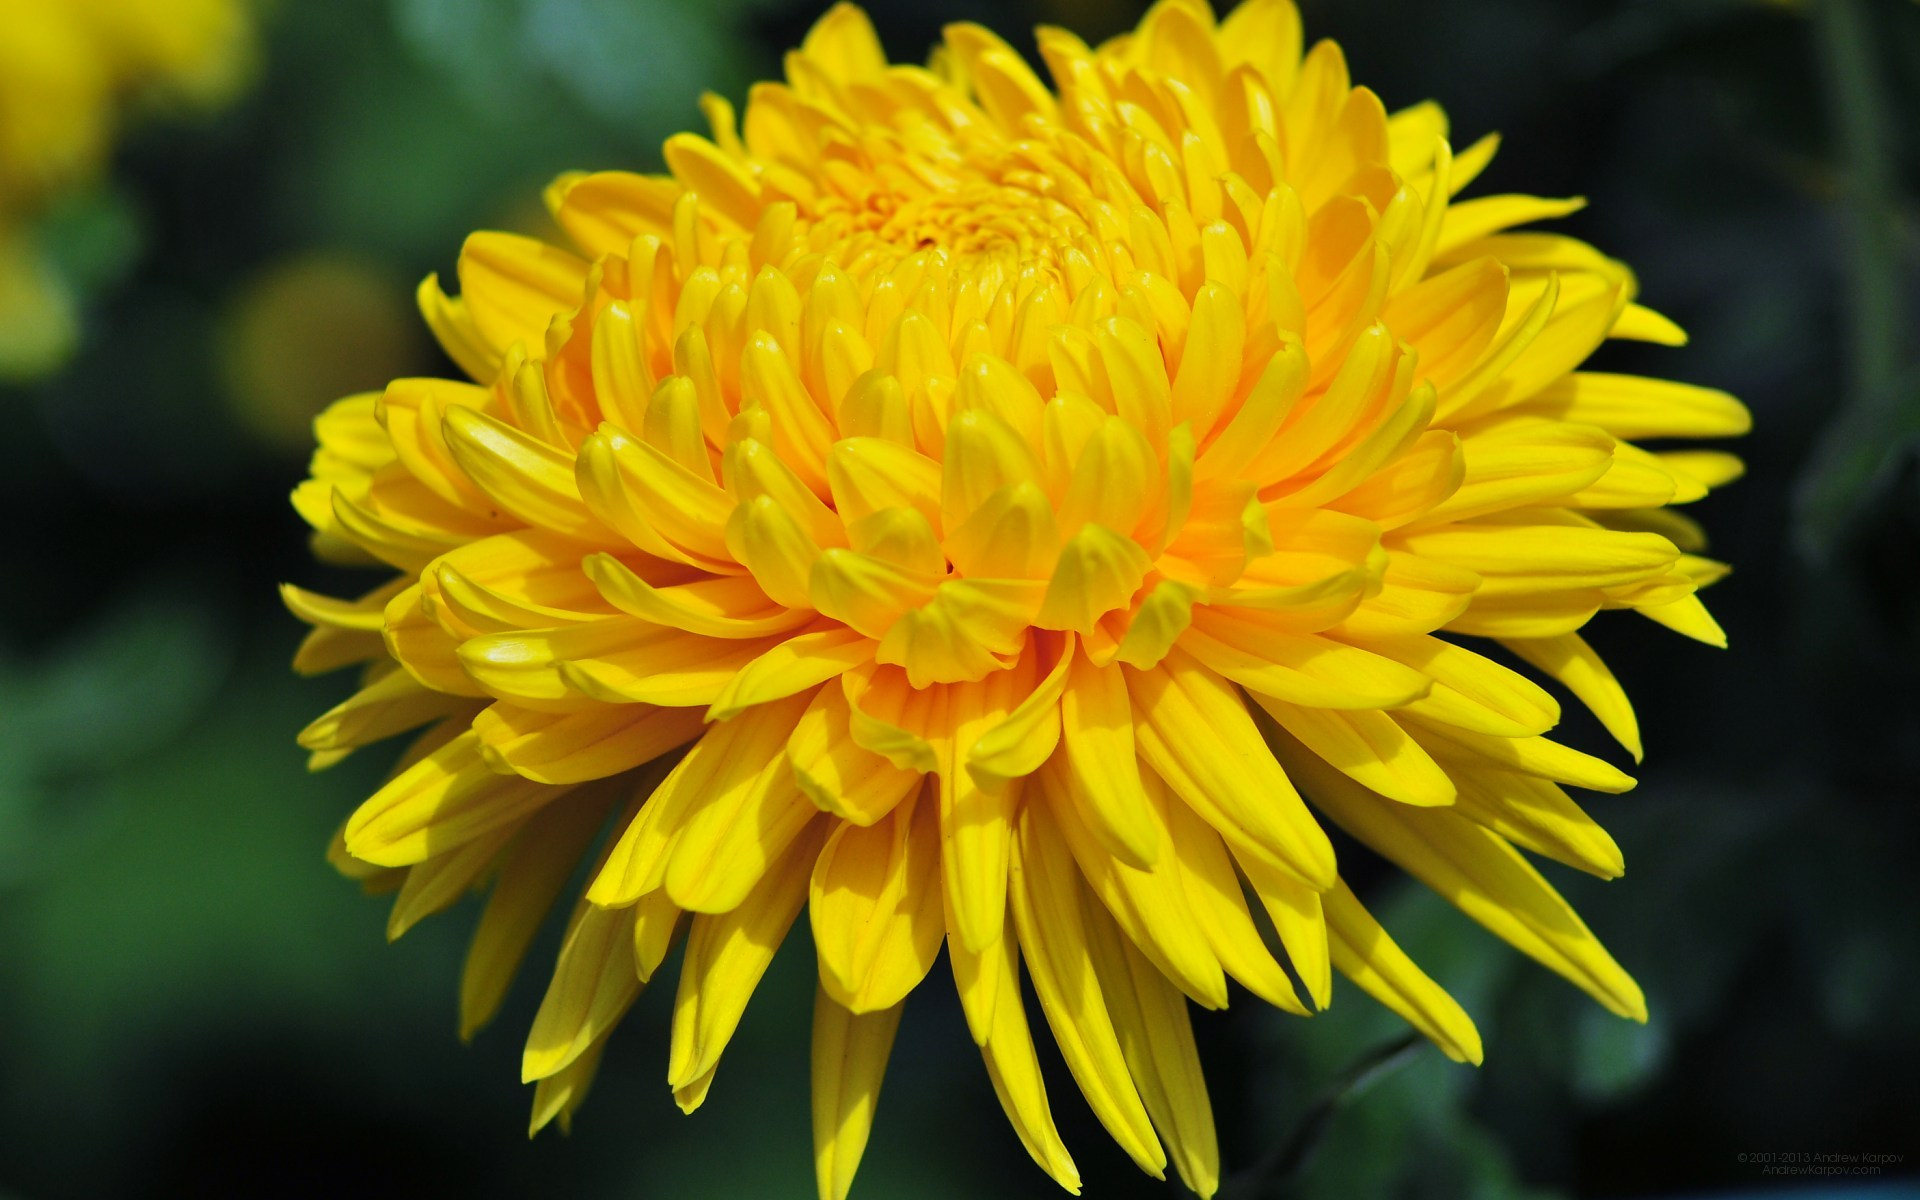 Yellow Chrysanthemum wallpaper | 1920x1200 | #23750 Yellow Chrysanthemum Flower